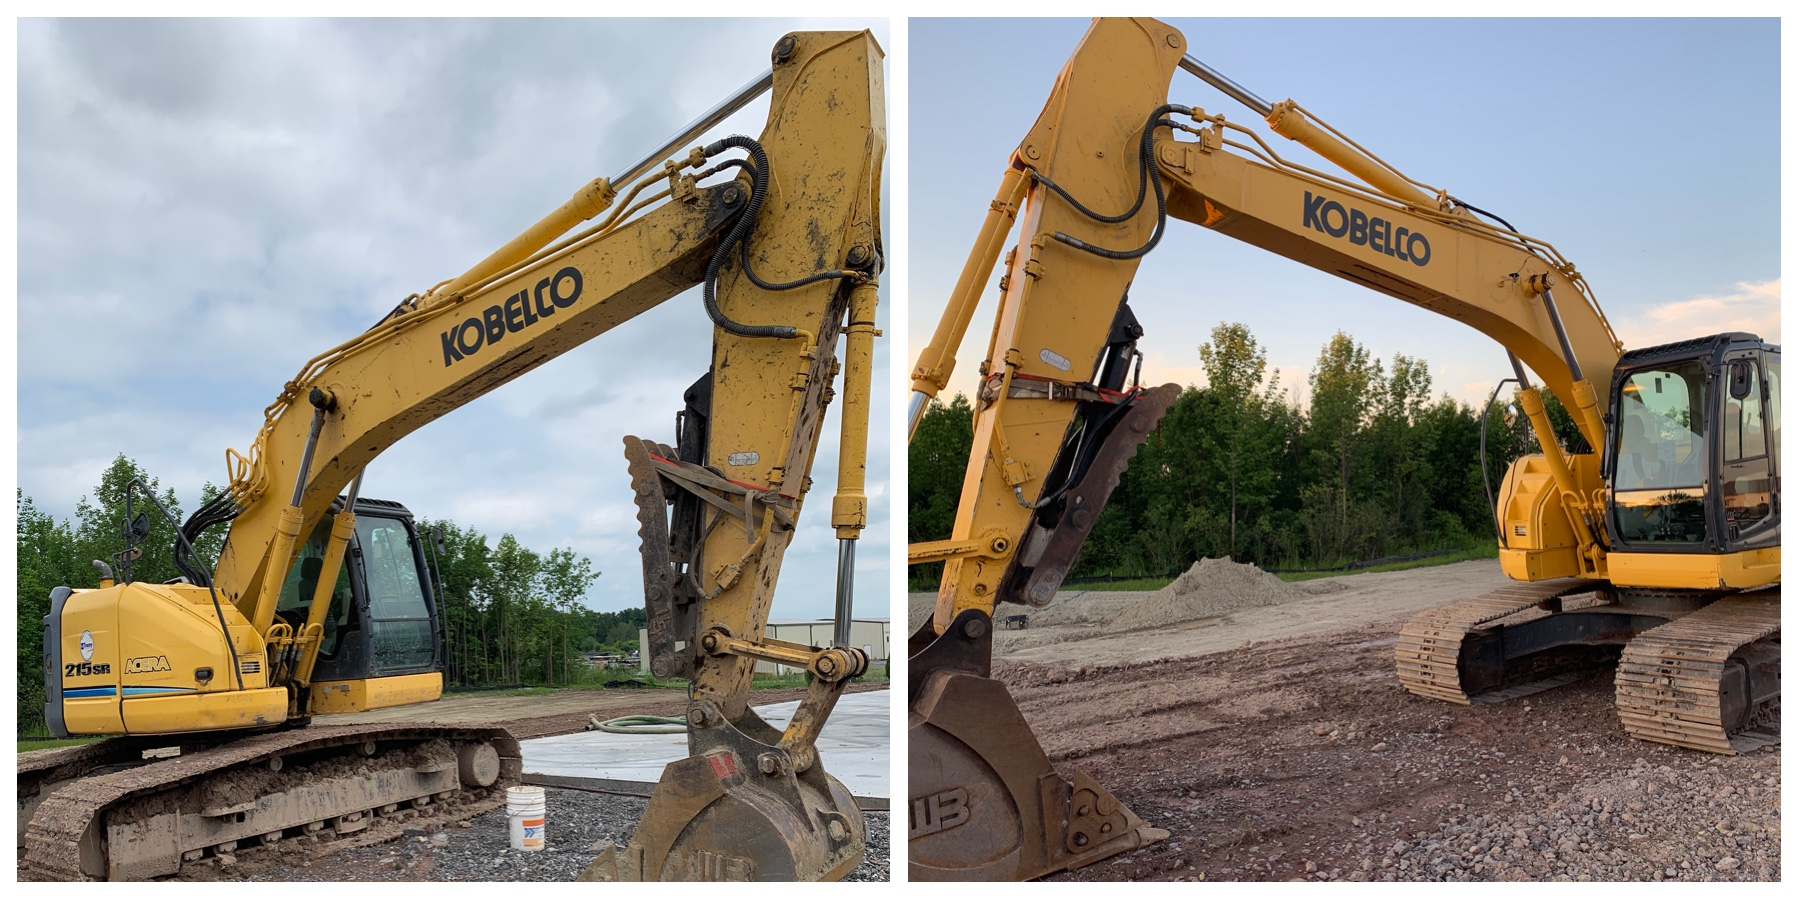 Mud filled tracks, grease pockets, and oxidation are no match. Your company image is a part of how your equipment looks. If you pride yourself on company image then let us improve that image.